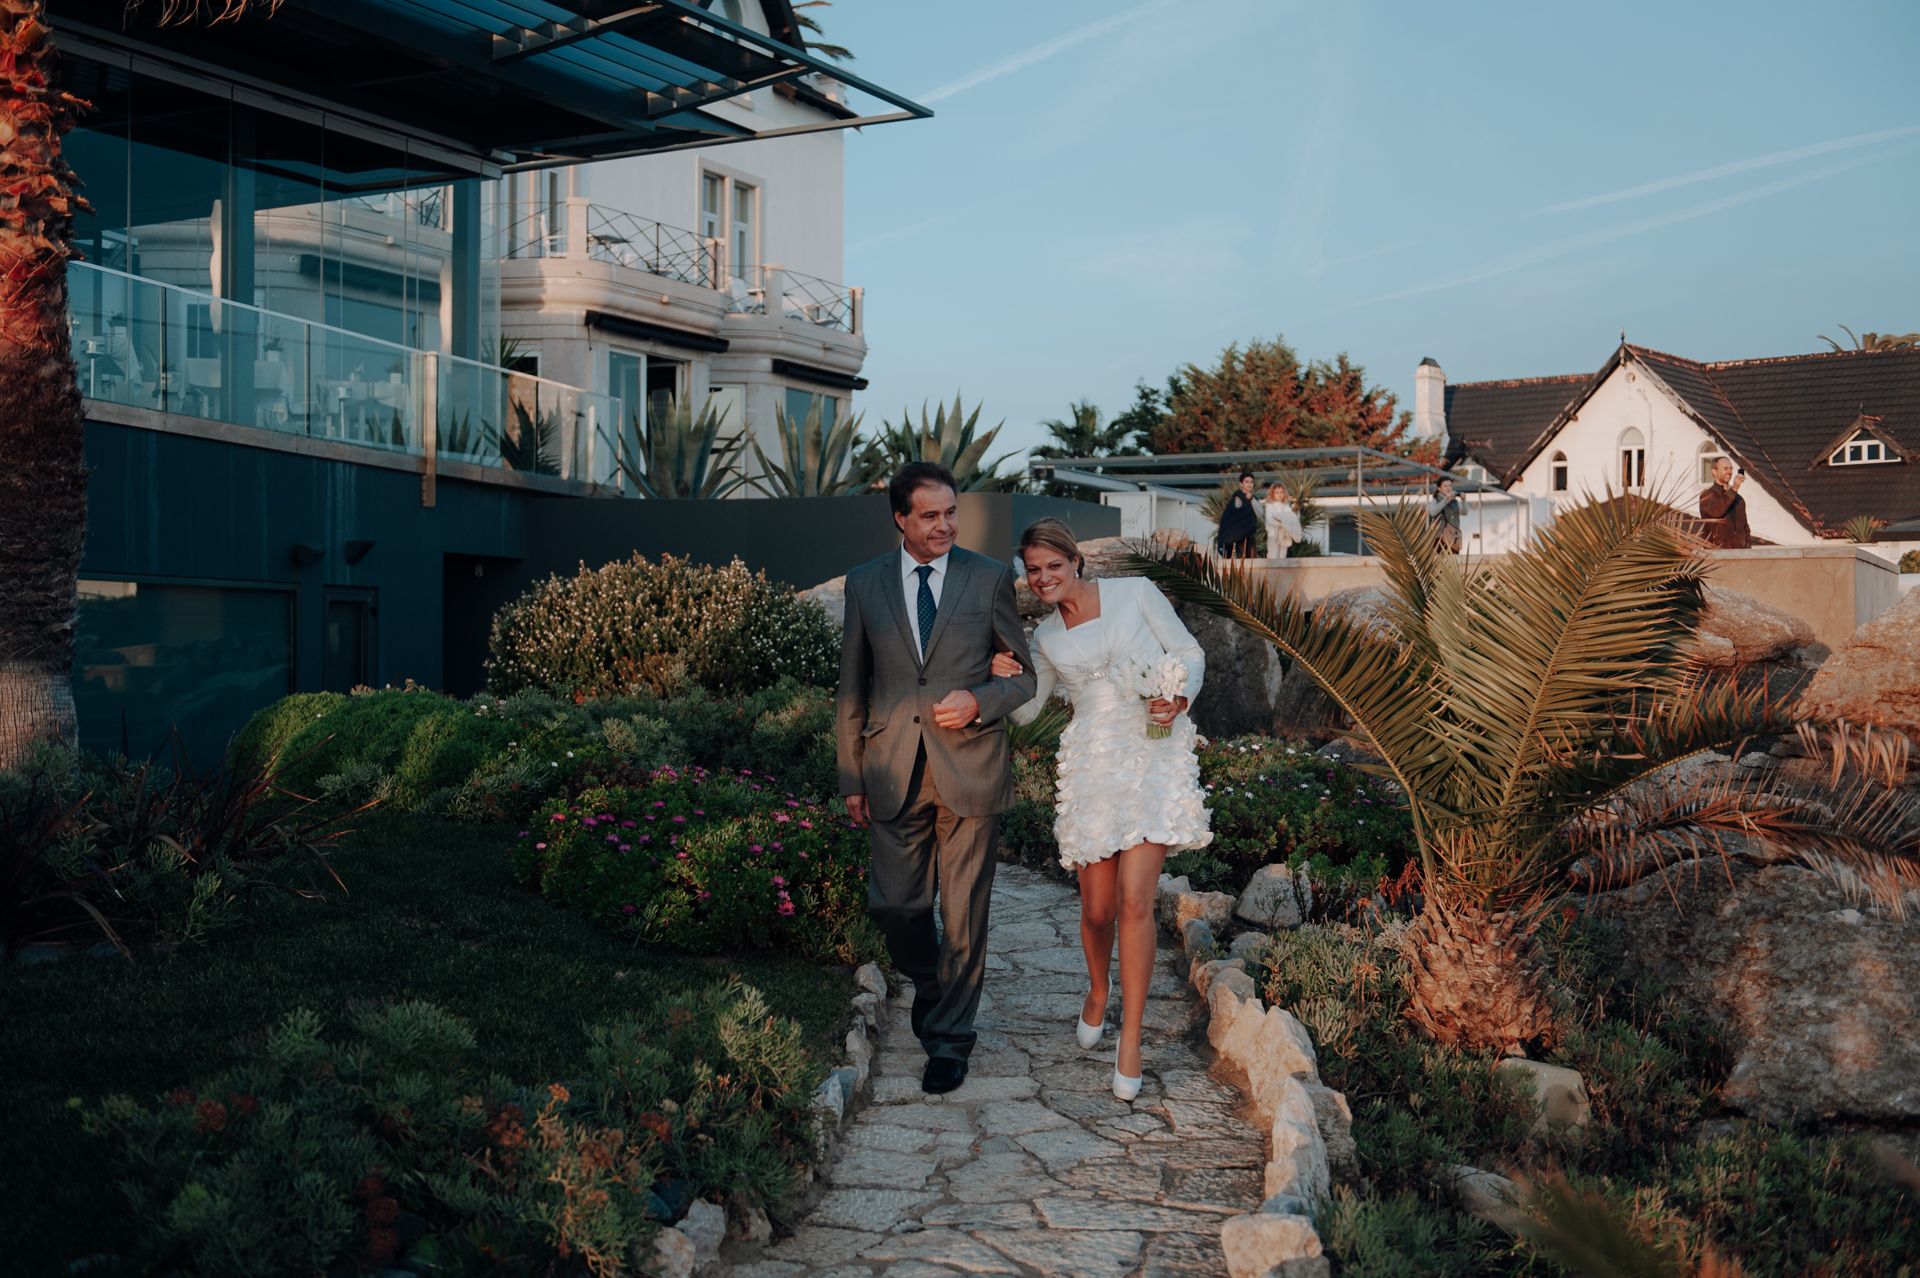 Destination Wedding Venue Picture - Cascais, Portugal | Walking with her father down the cobblestone path that served as her aisle